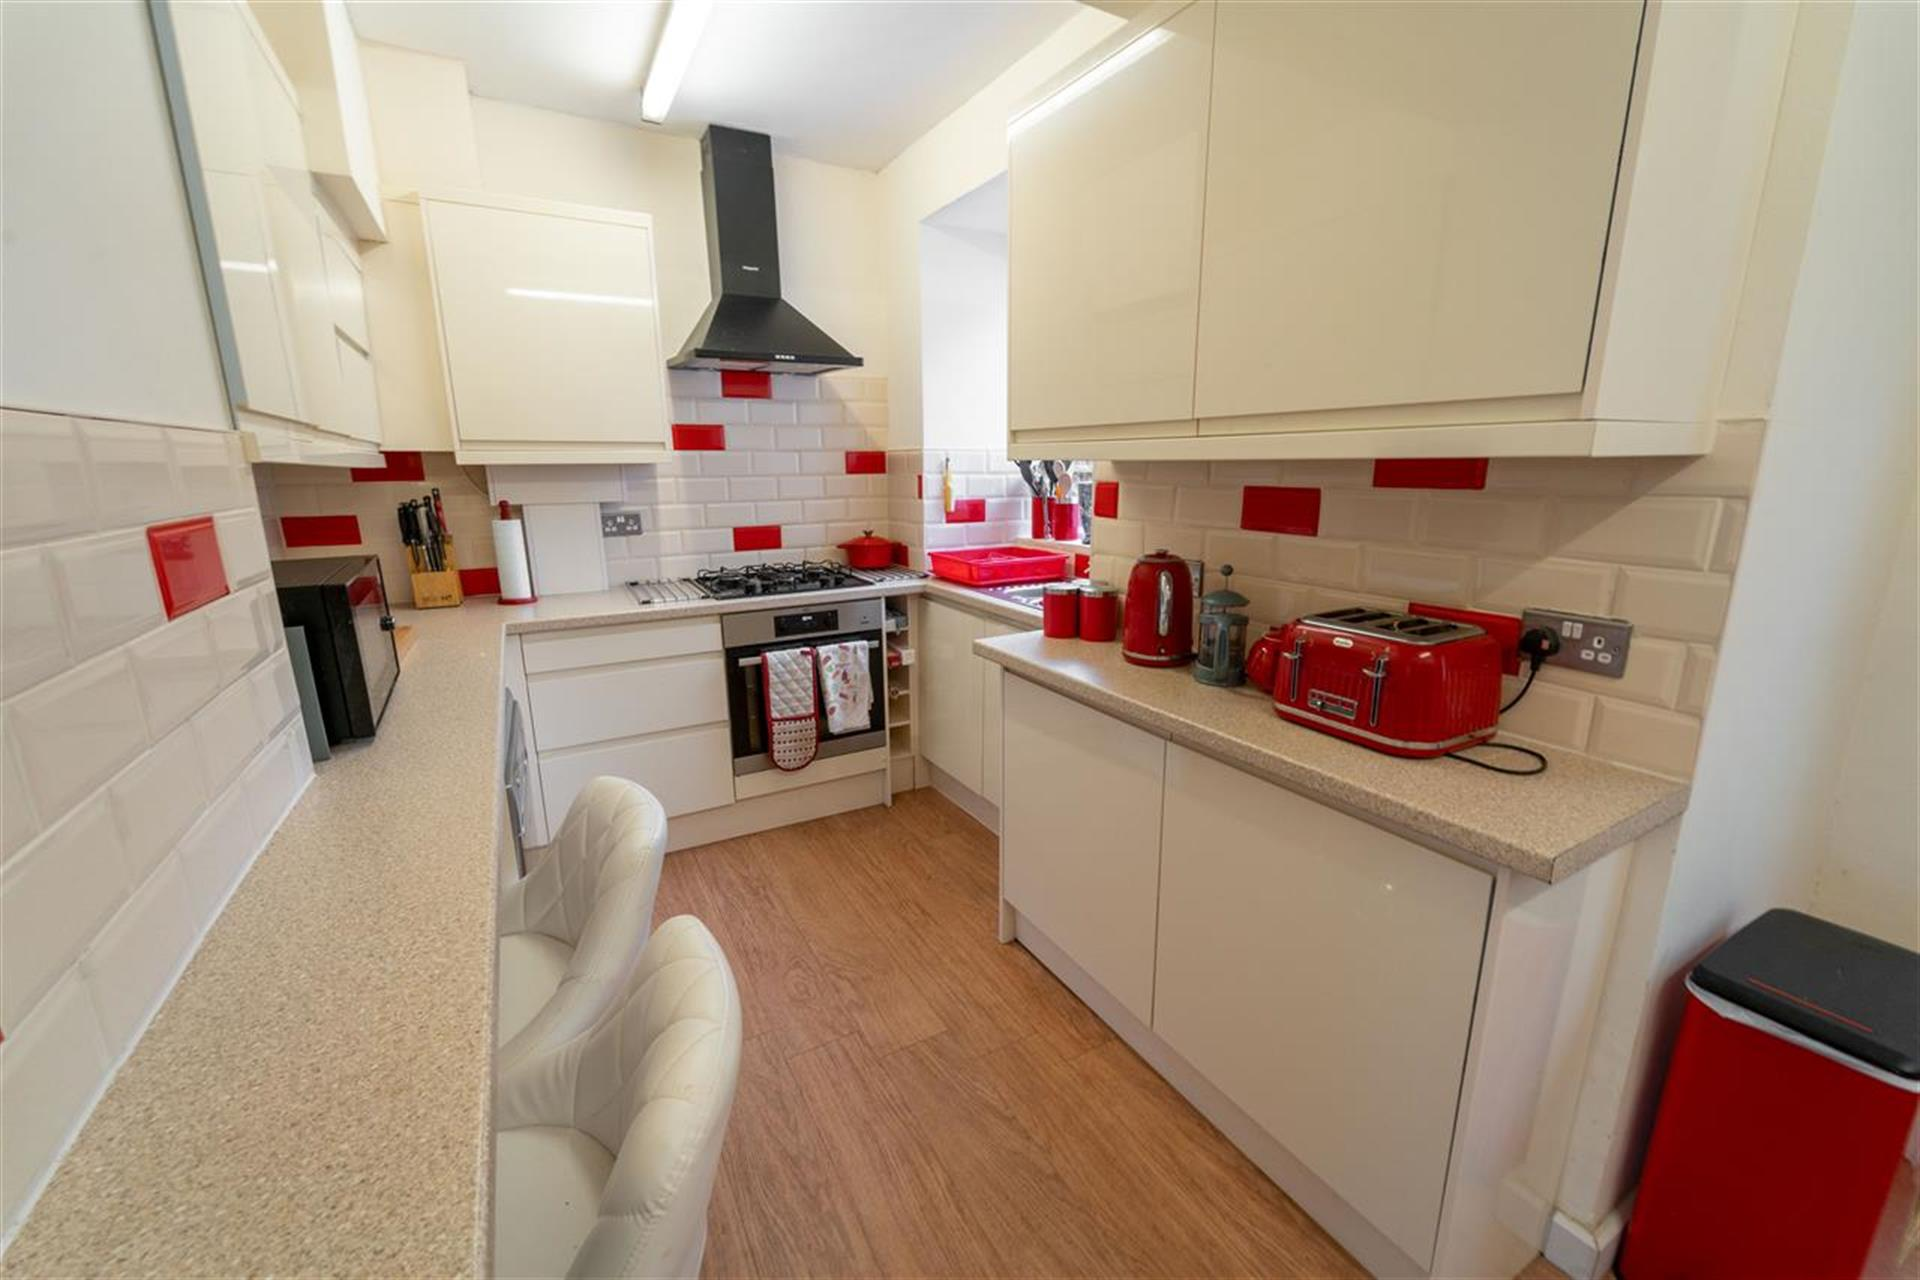 3 Bedroom Semi-detached House For Sale - Fitted Kitchen